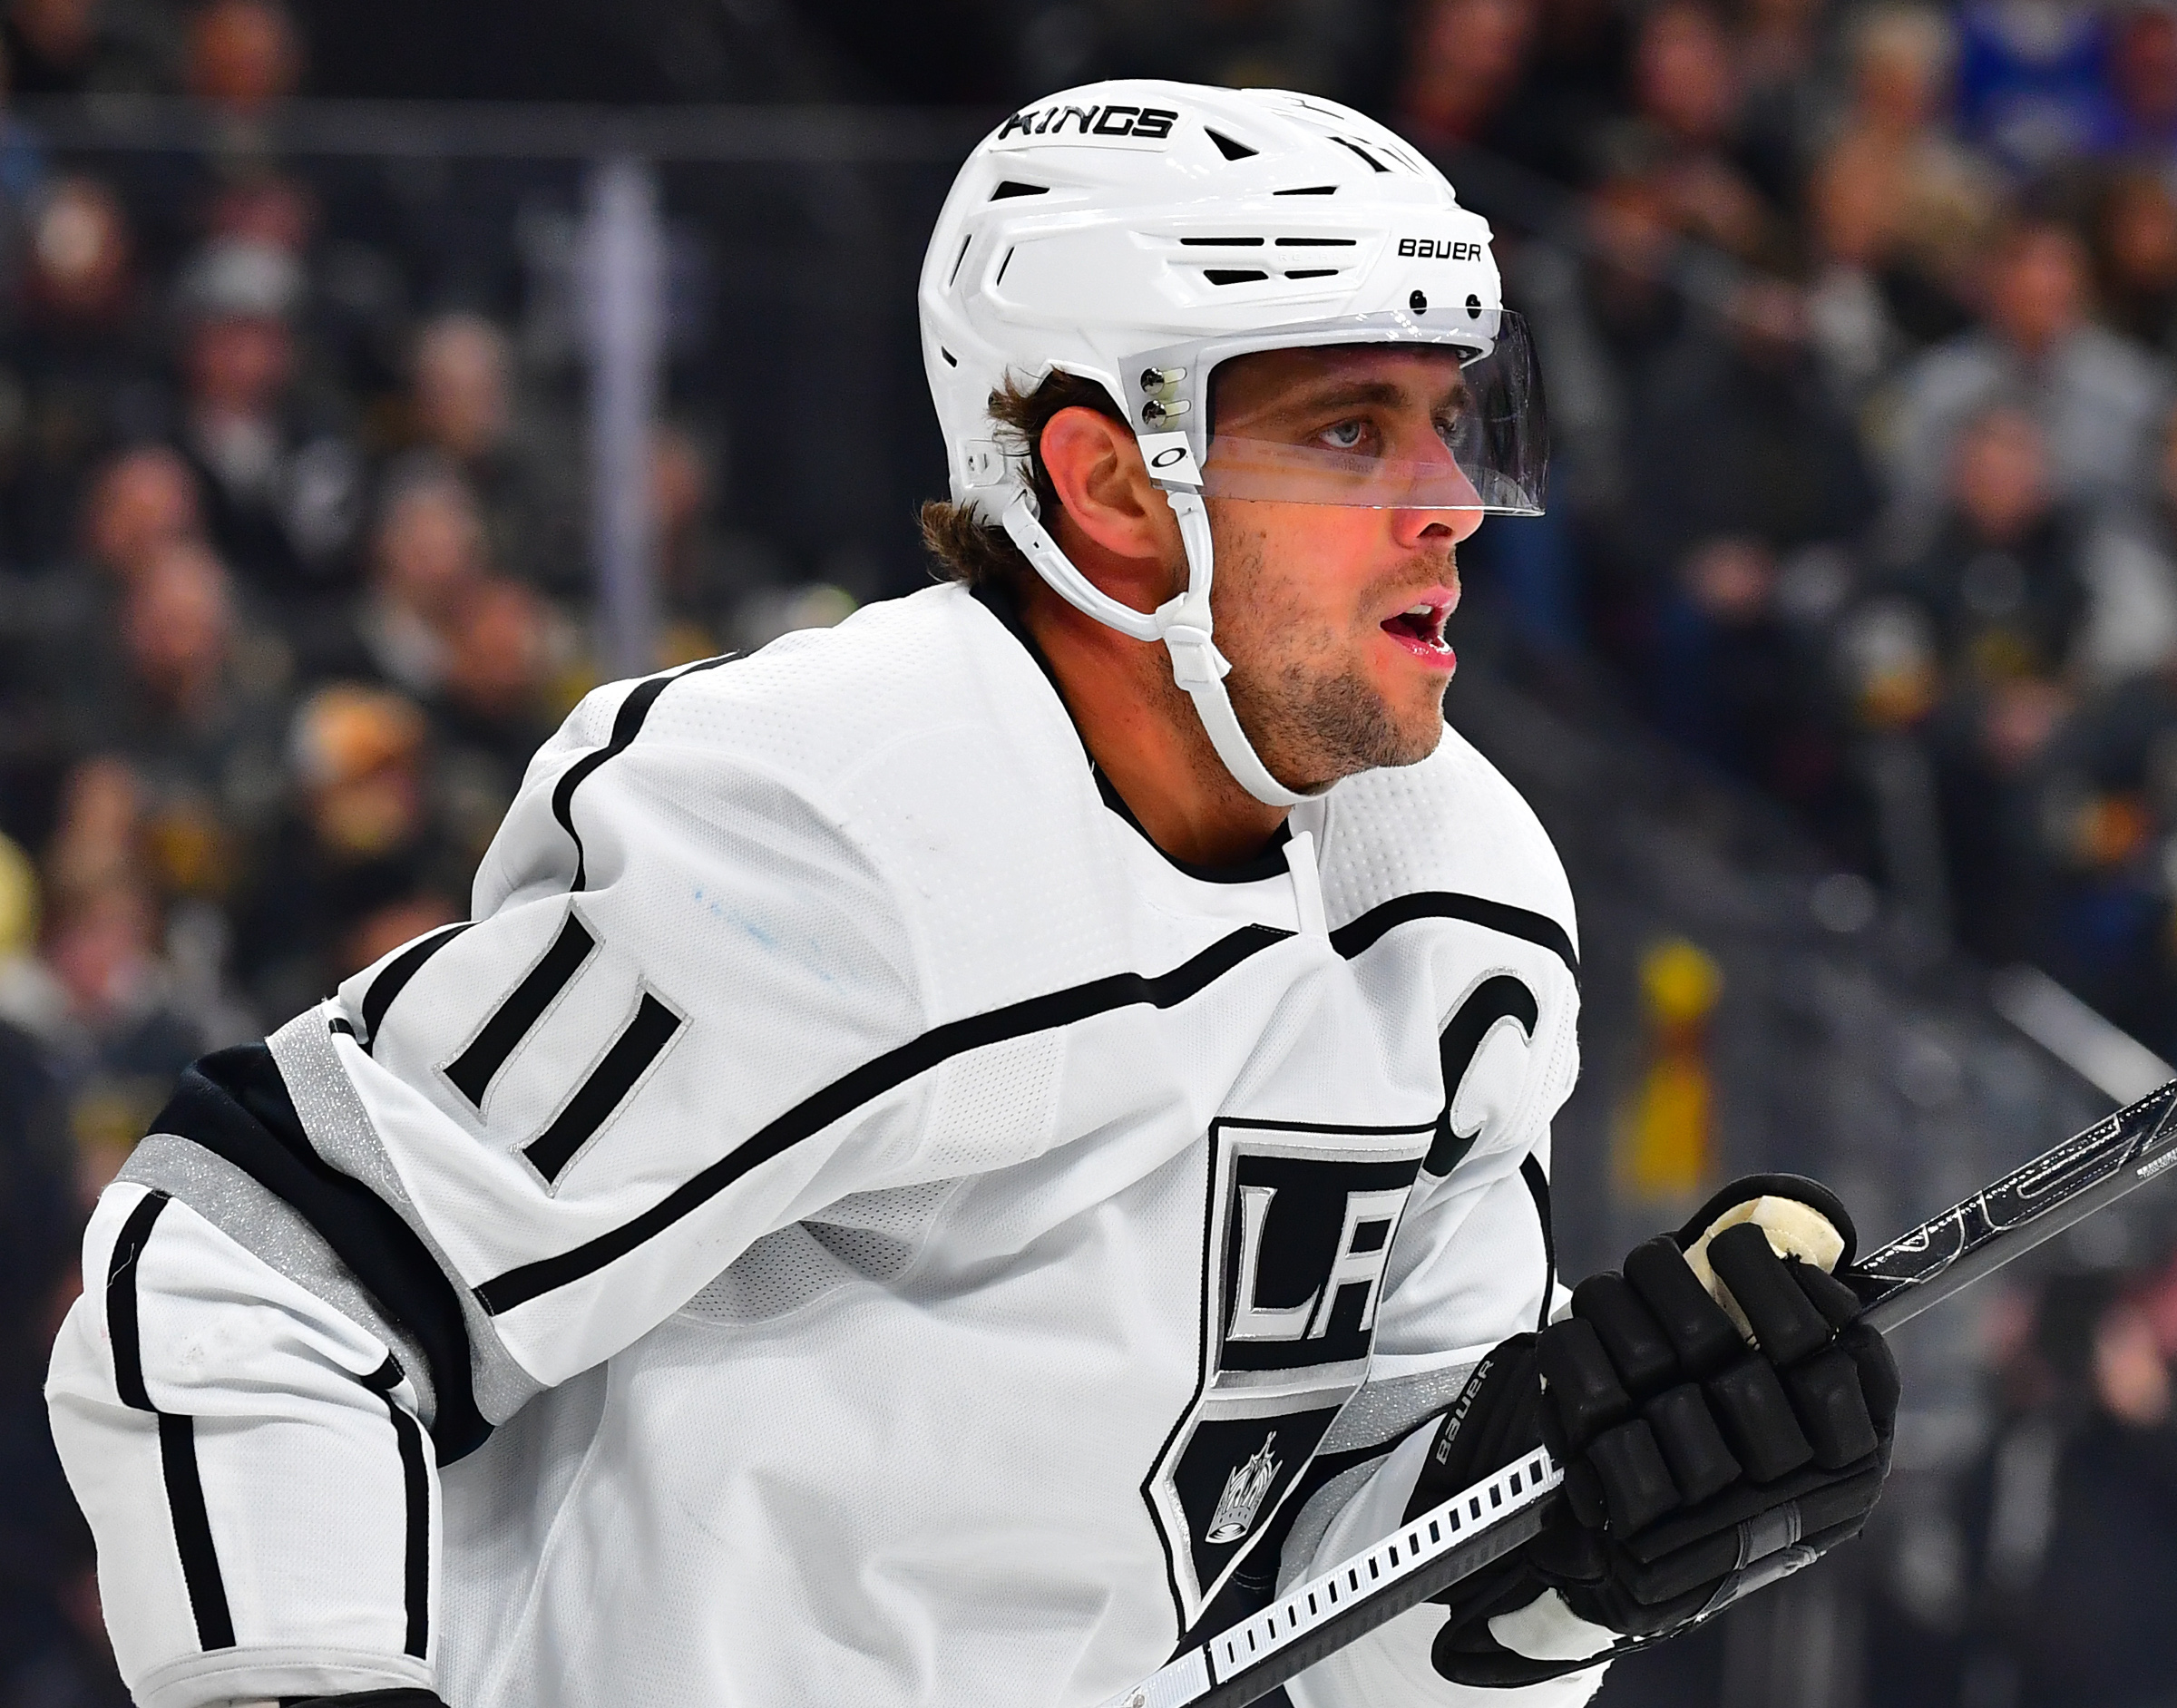 Anze Kopitar becomes 91st NHL player to have 1000 career regular season points